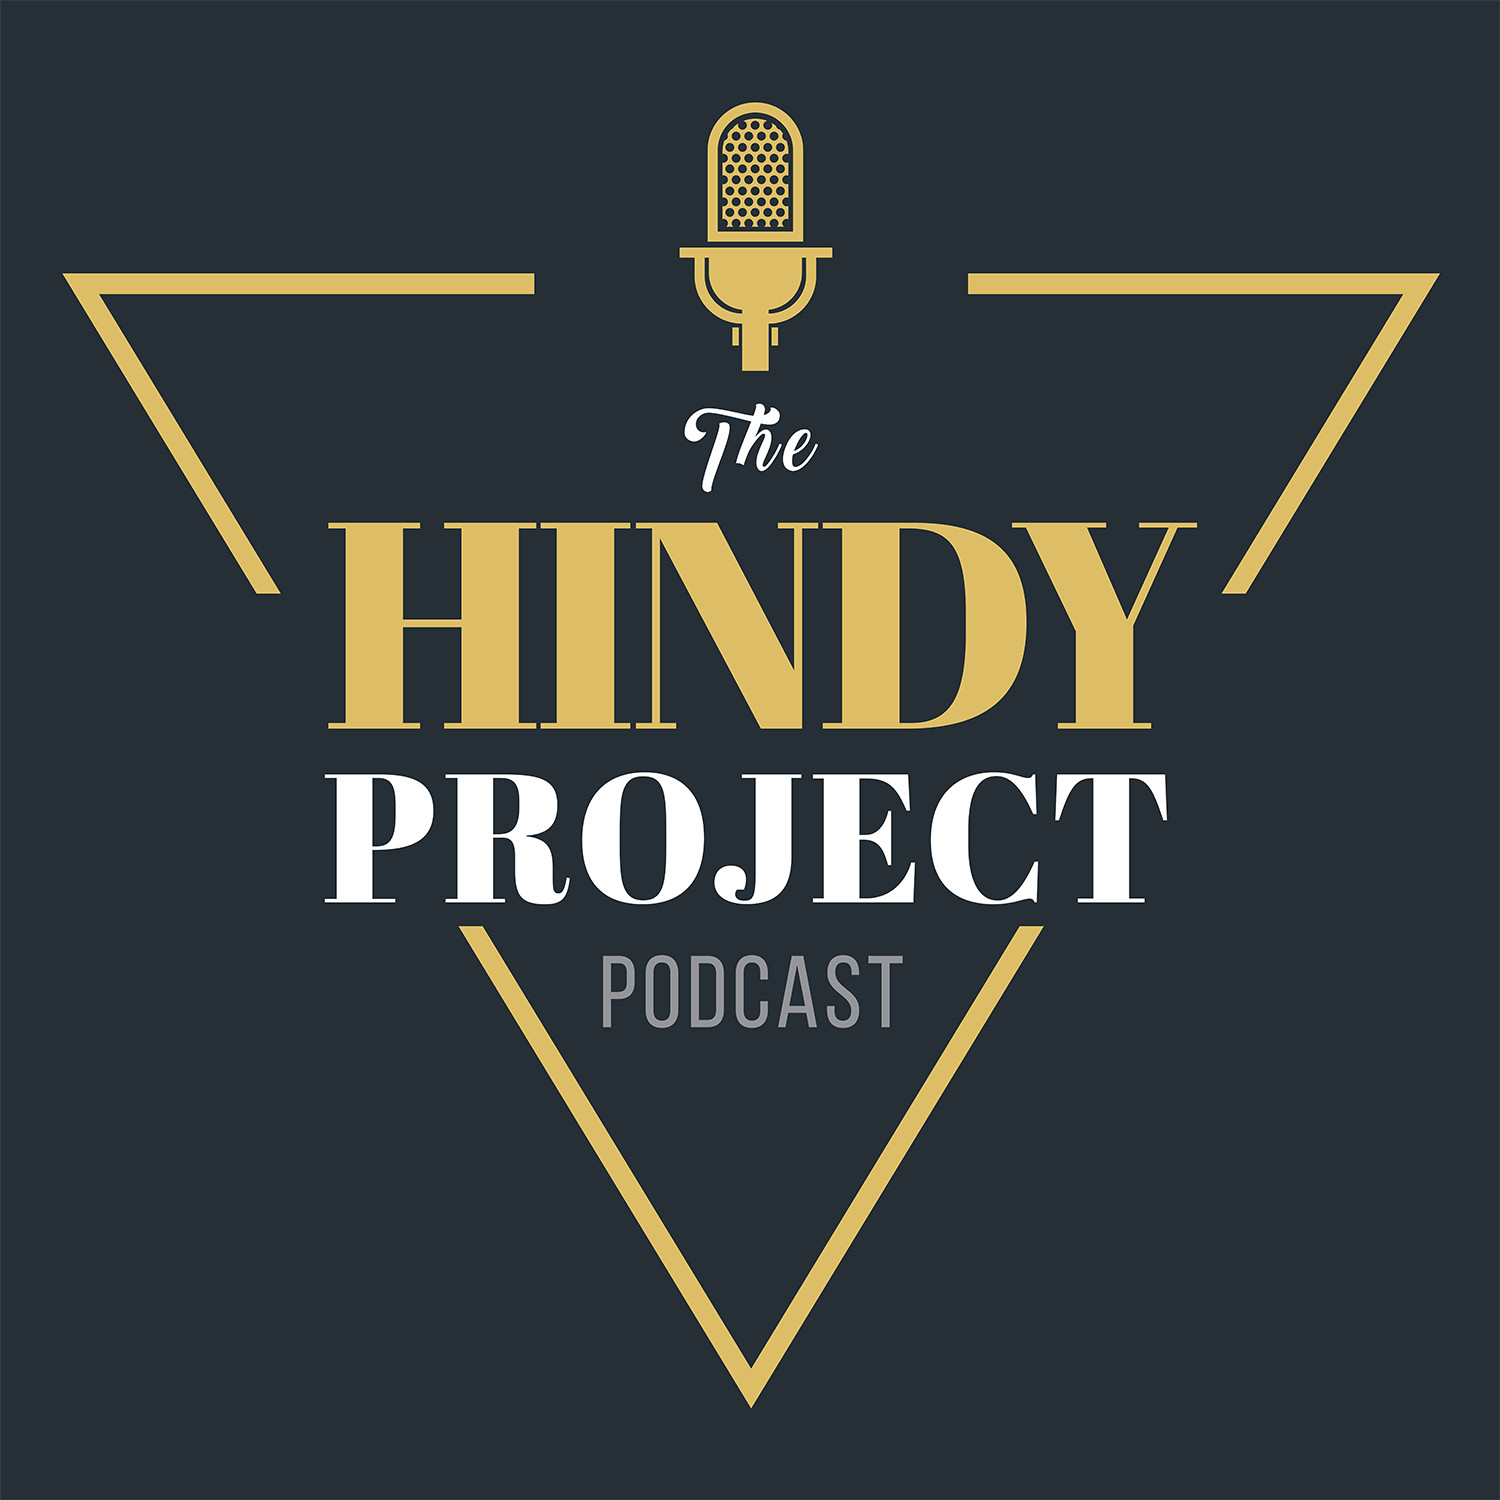 The Hindy Project Podcast show art